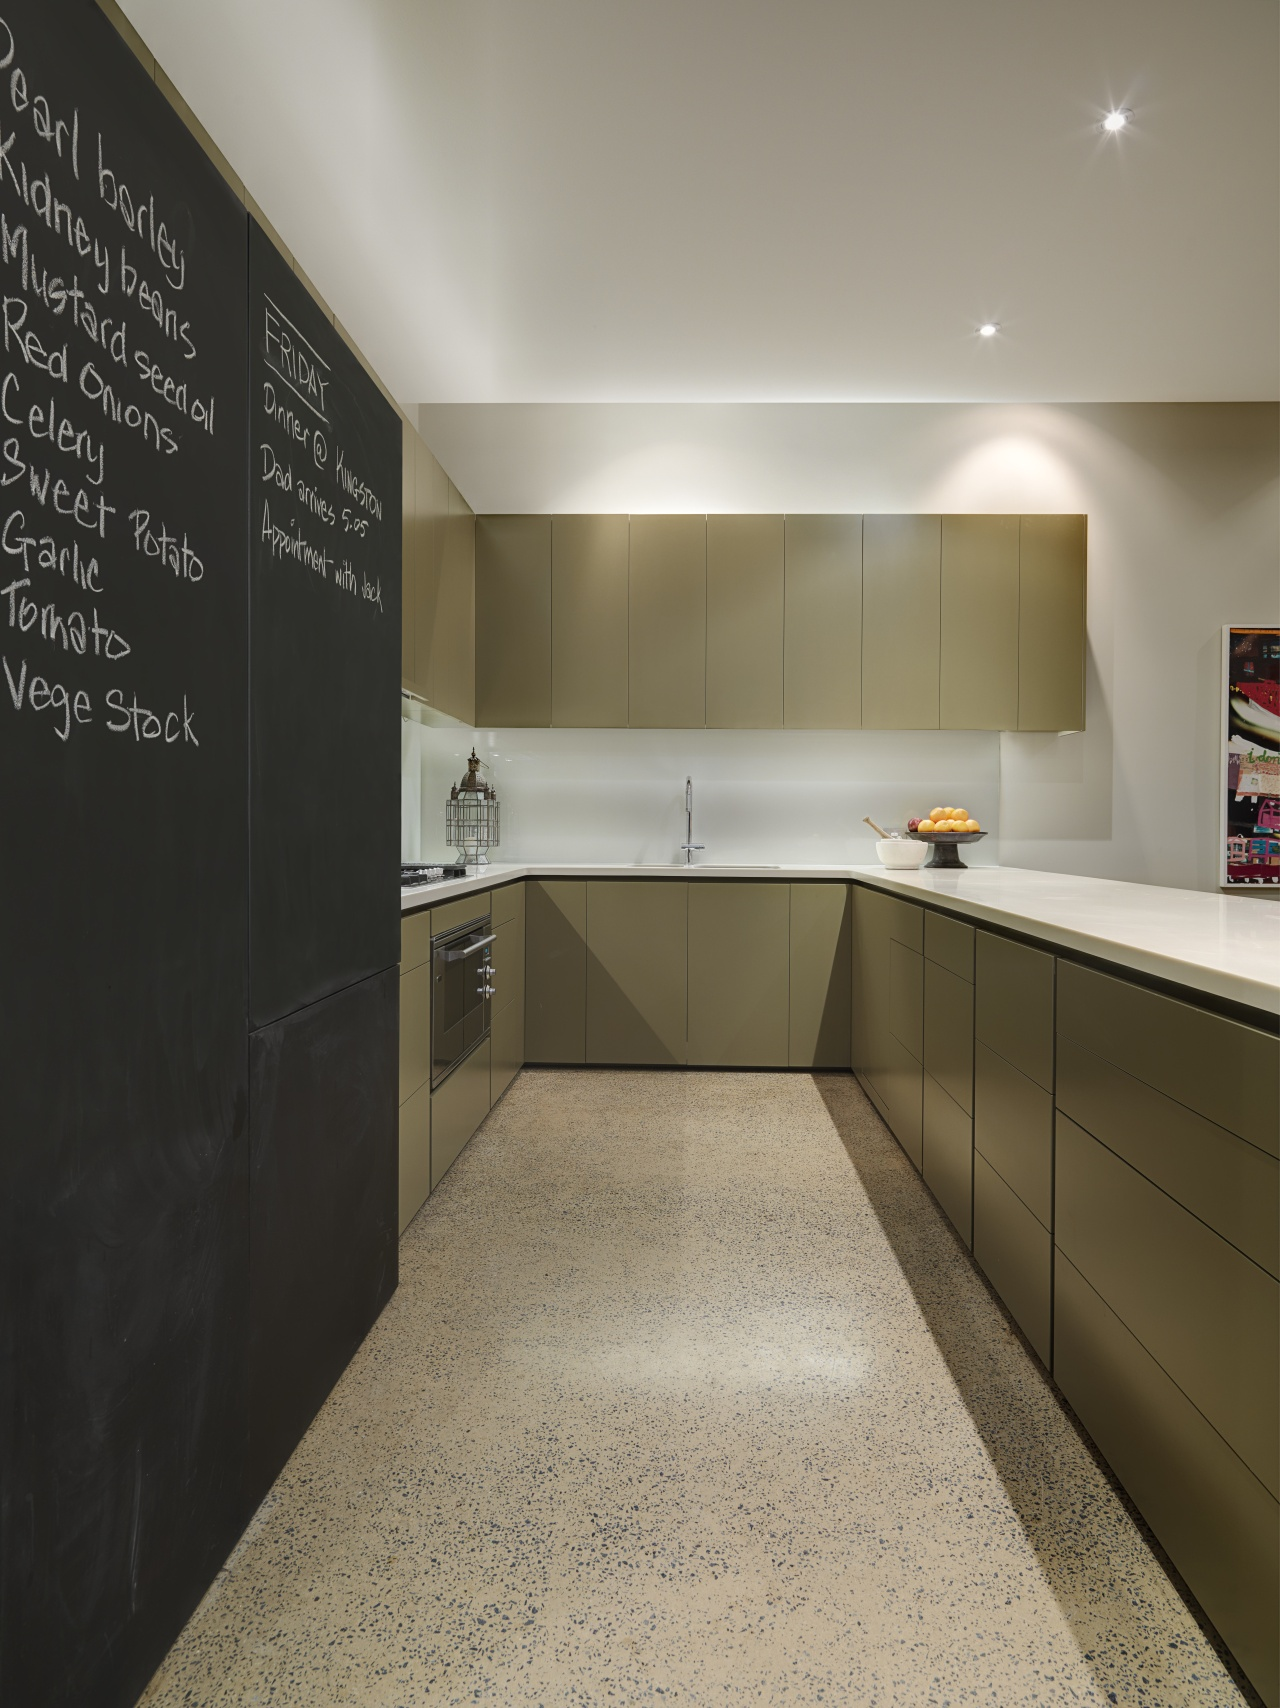 View of kitchen which features large blackboards, polished cabinetry, countertop, floor, flooring, interior design, kitchen, real estate, room, gray, brown